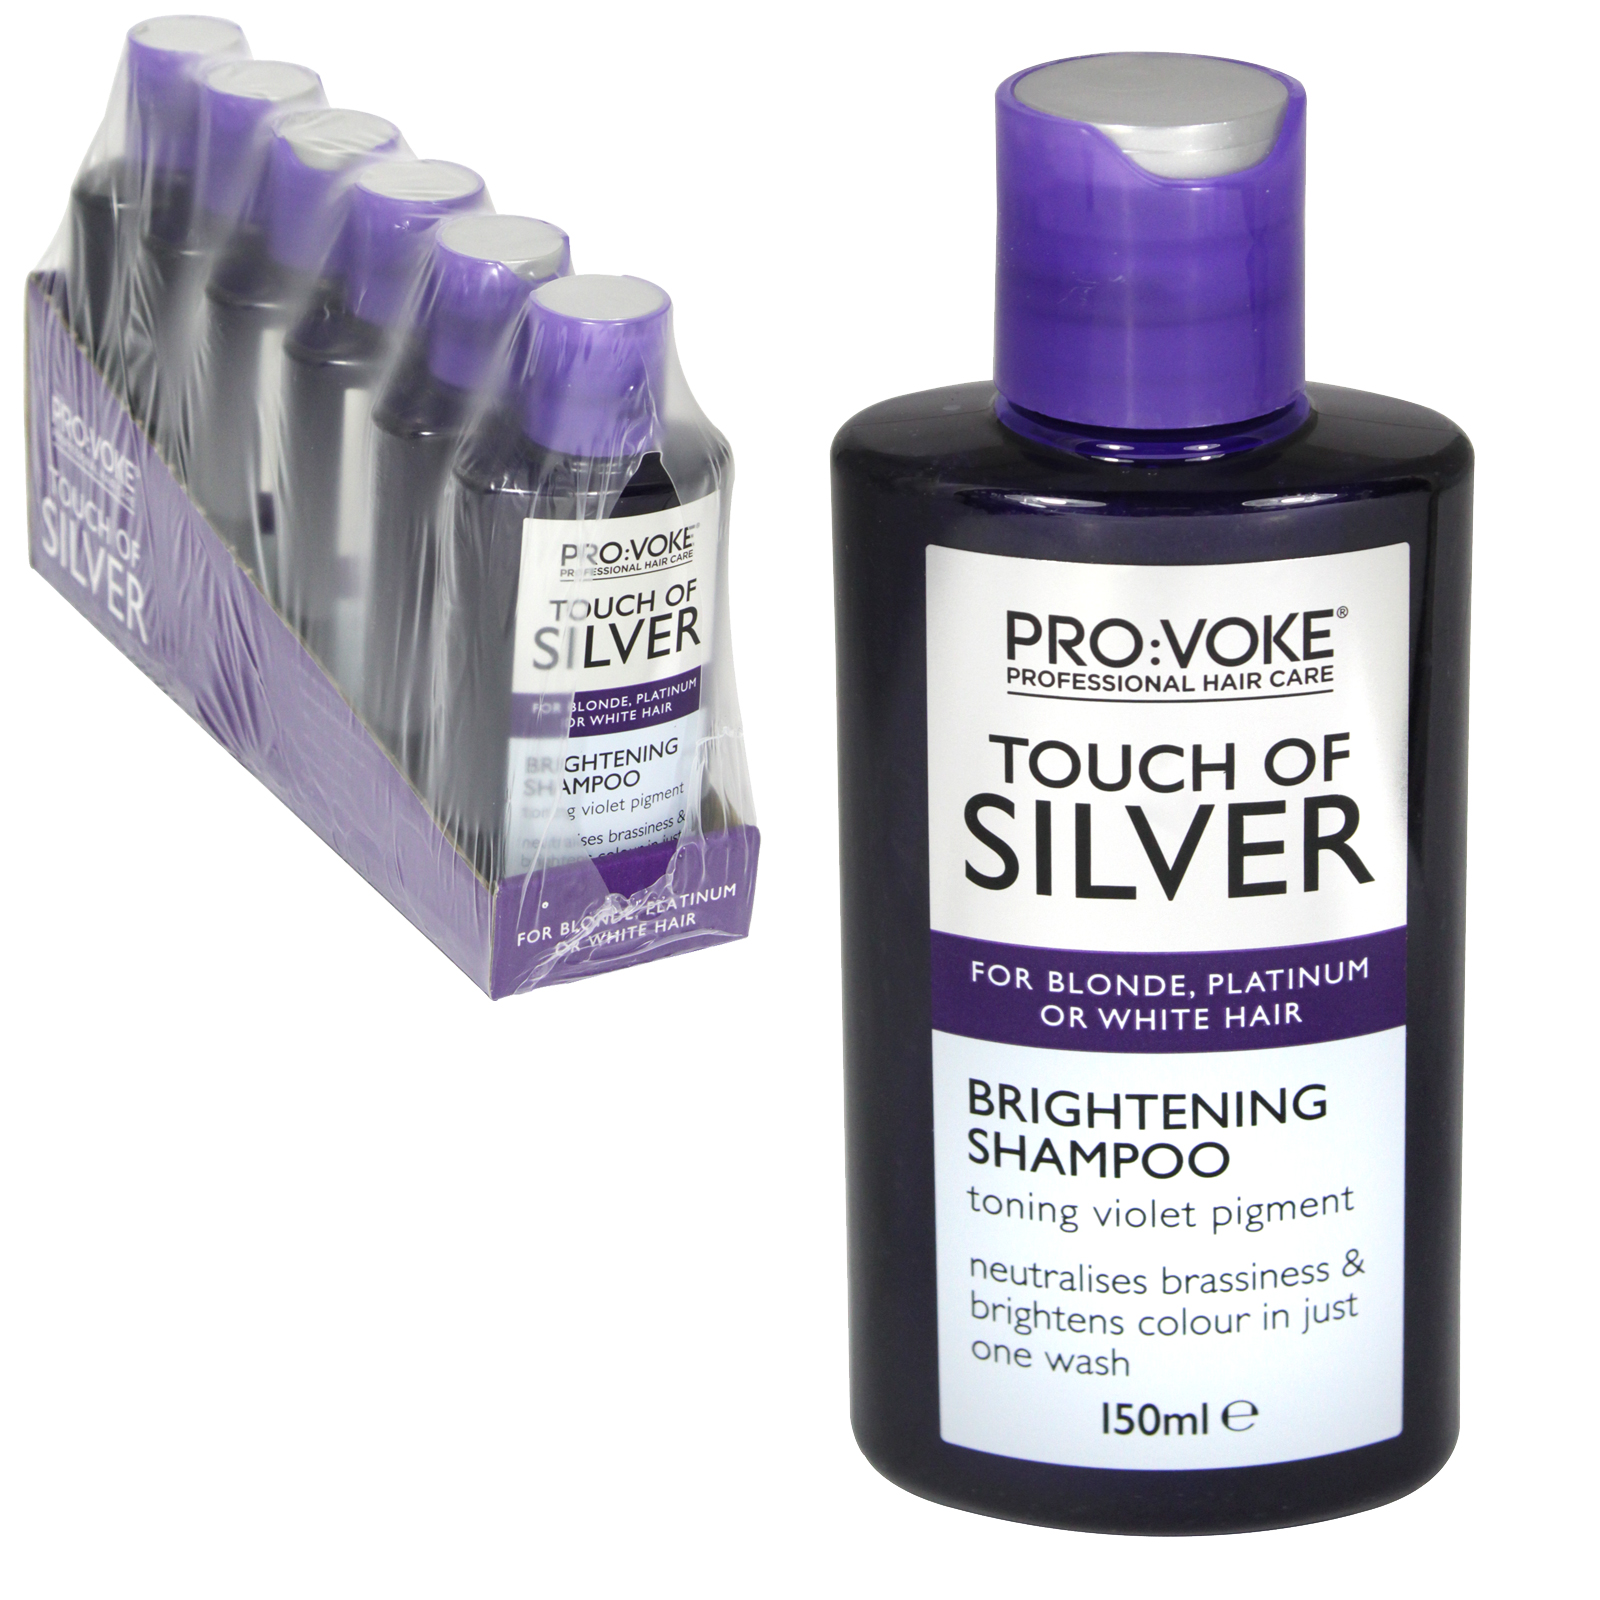 TOUCH OF SILVER SHAMPOO 150ML BRIGHTENING X6